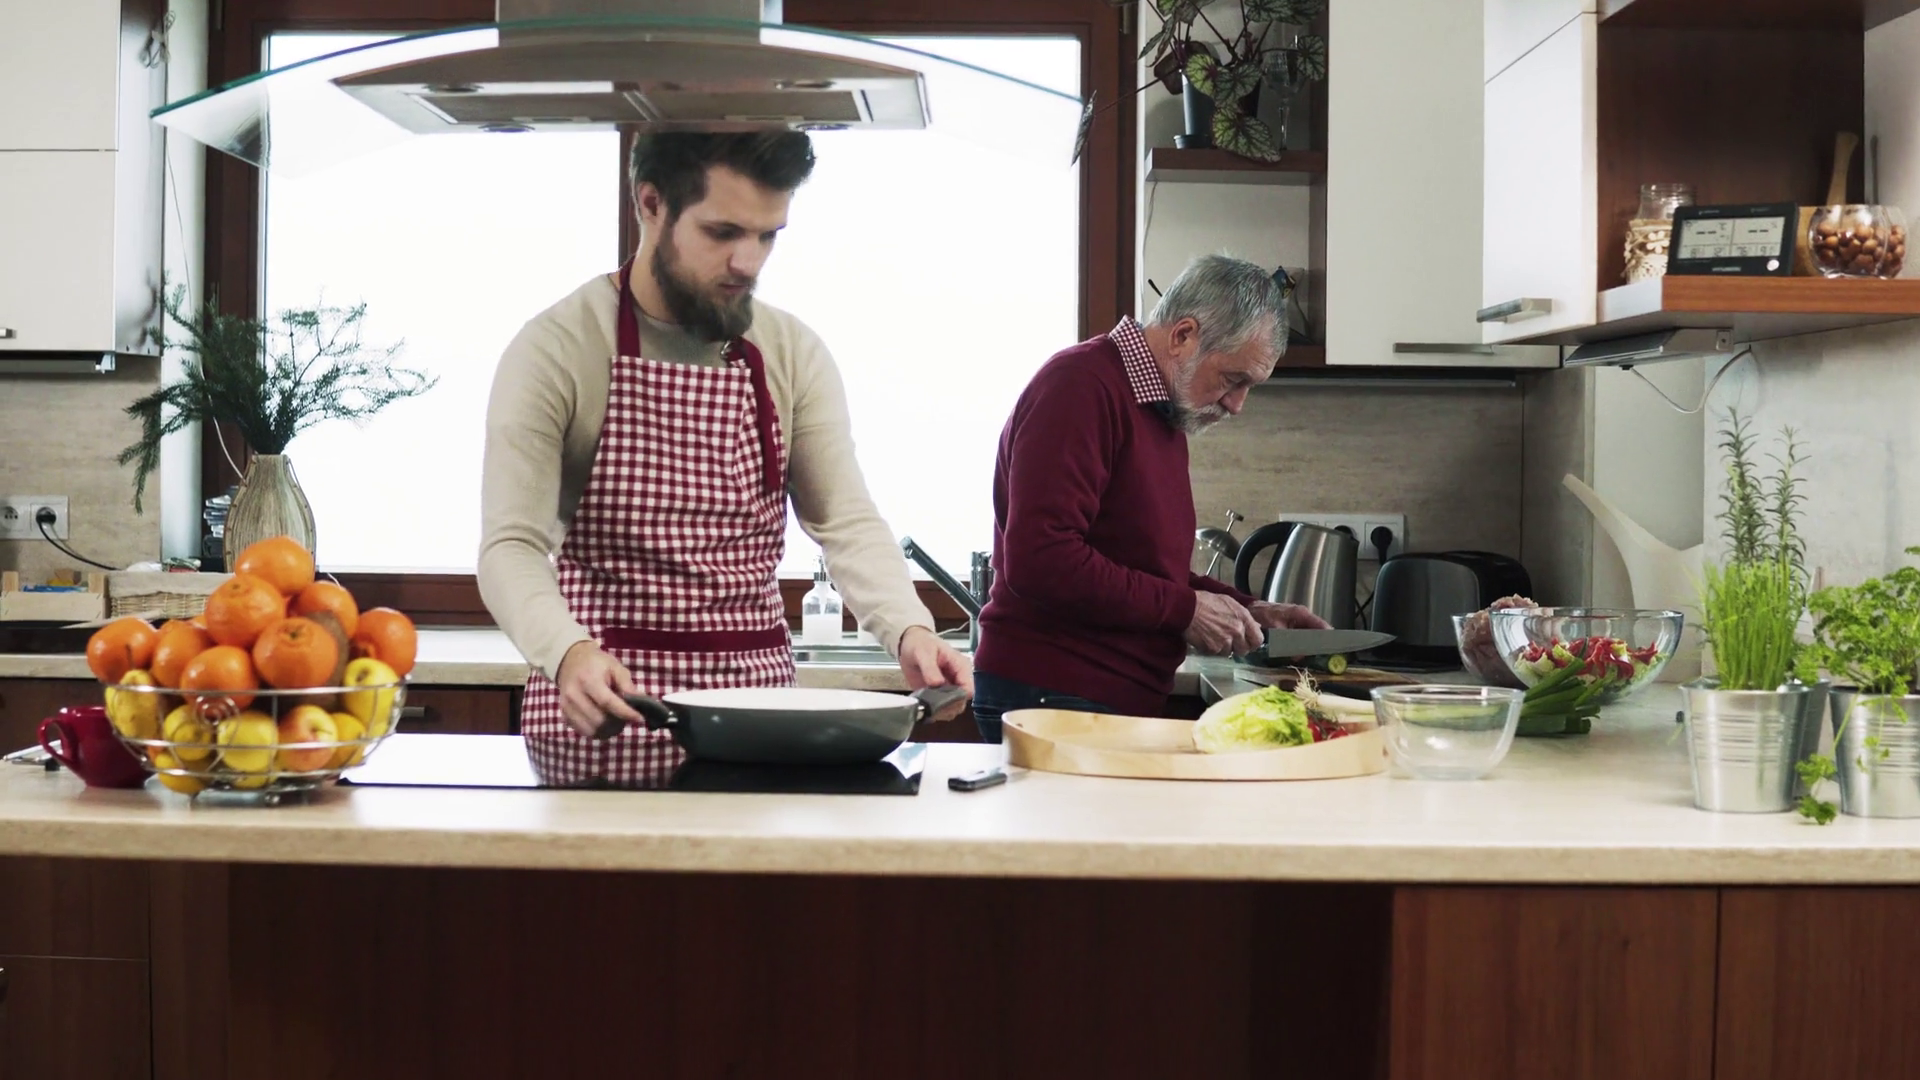 Videoblocks hipster son with his senior father cooking in the kitchen hda1pc7qf thumbnail full01 png